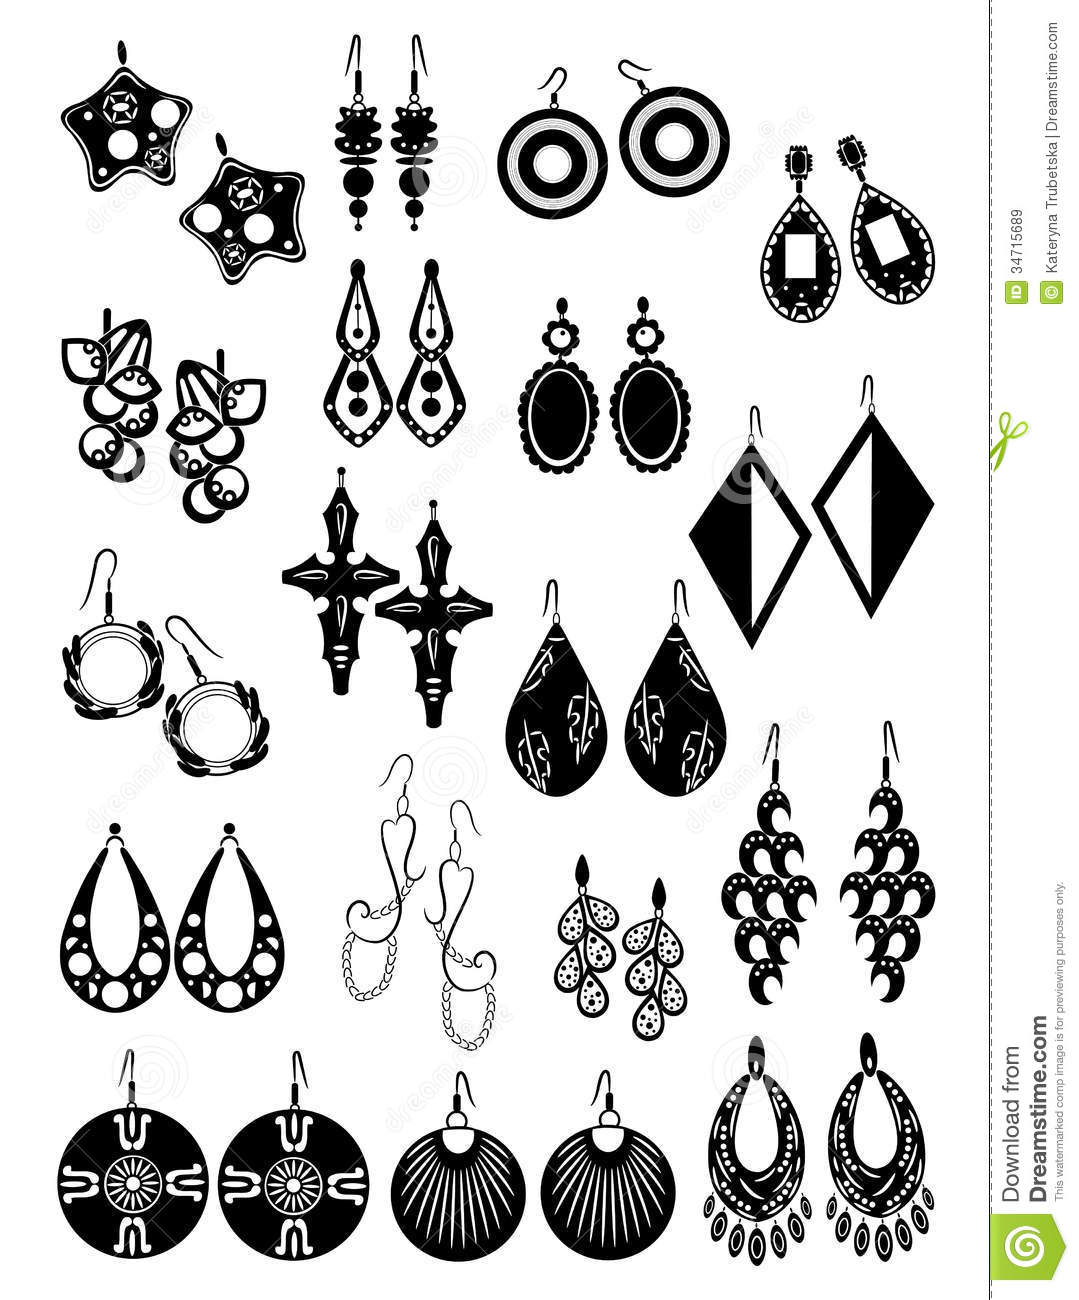 Silhouettes Of Earrings Royalty Free Stock Images   Image  34715689